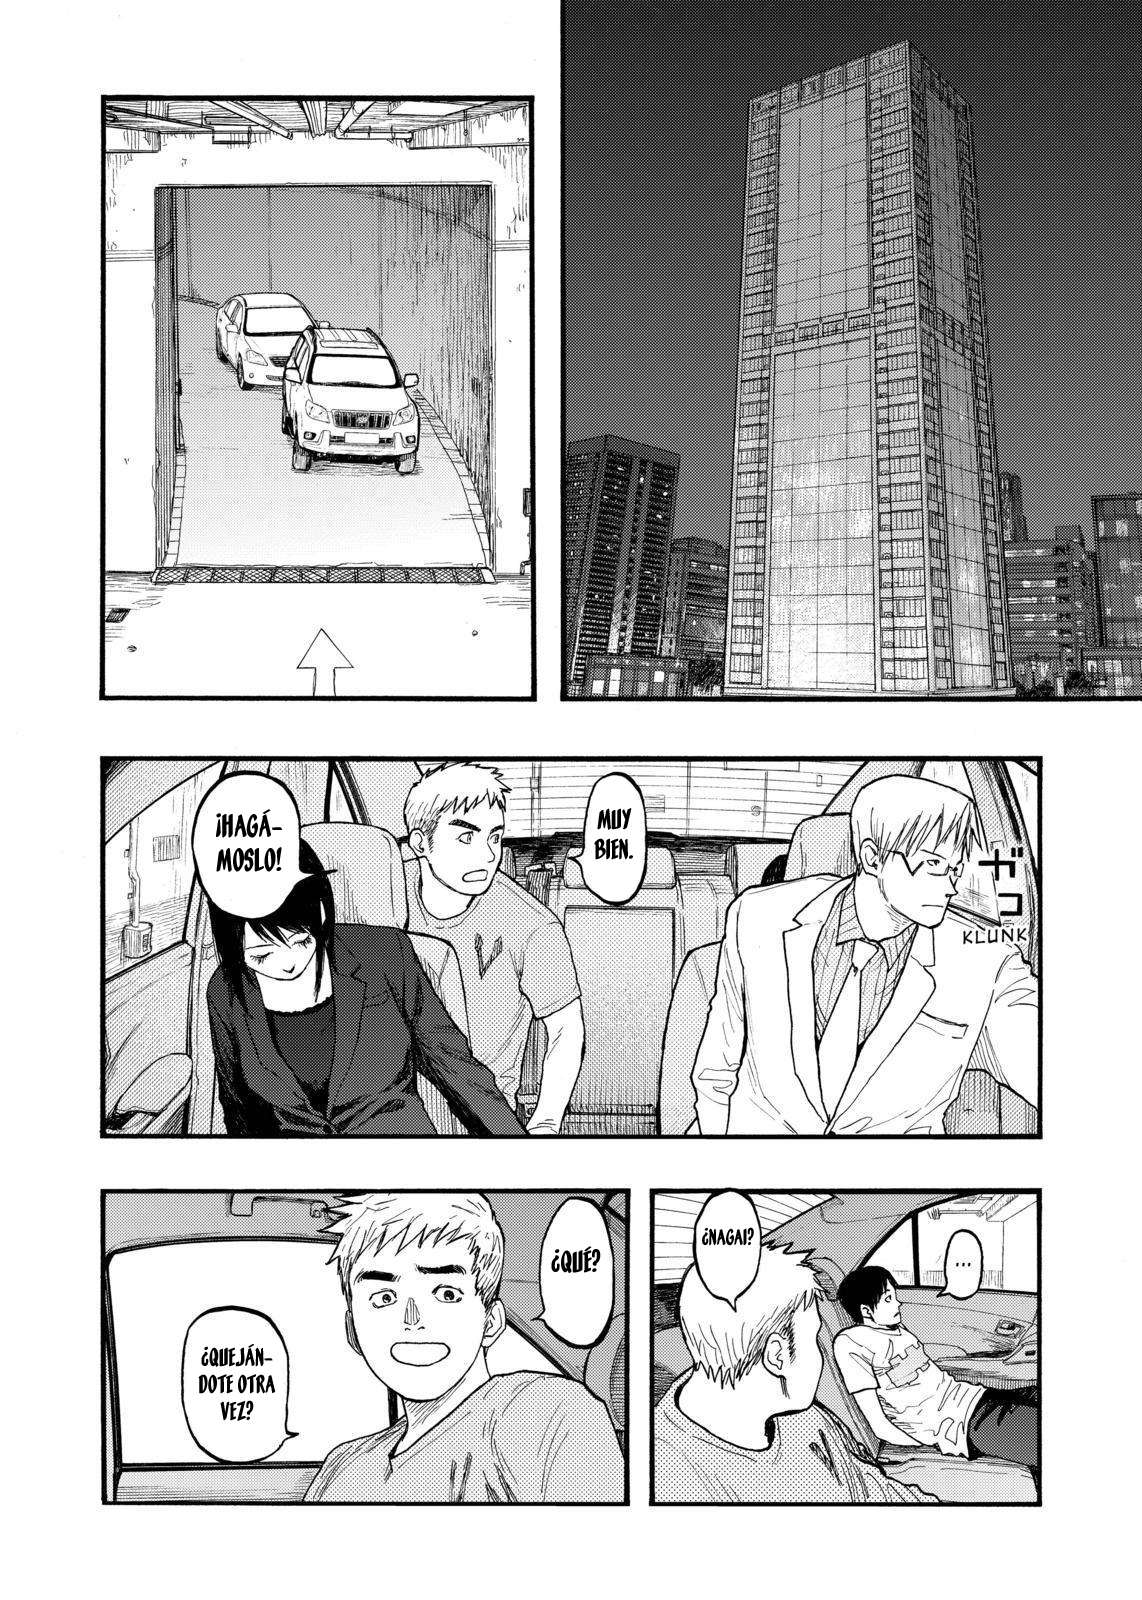 https://c5.ninemanga.com/es_manga/33/14177/391808/21b58d0c2661f05c6226b4262b44b976.jpg Page 3